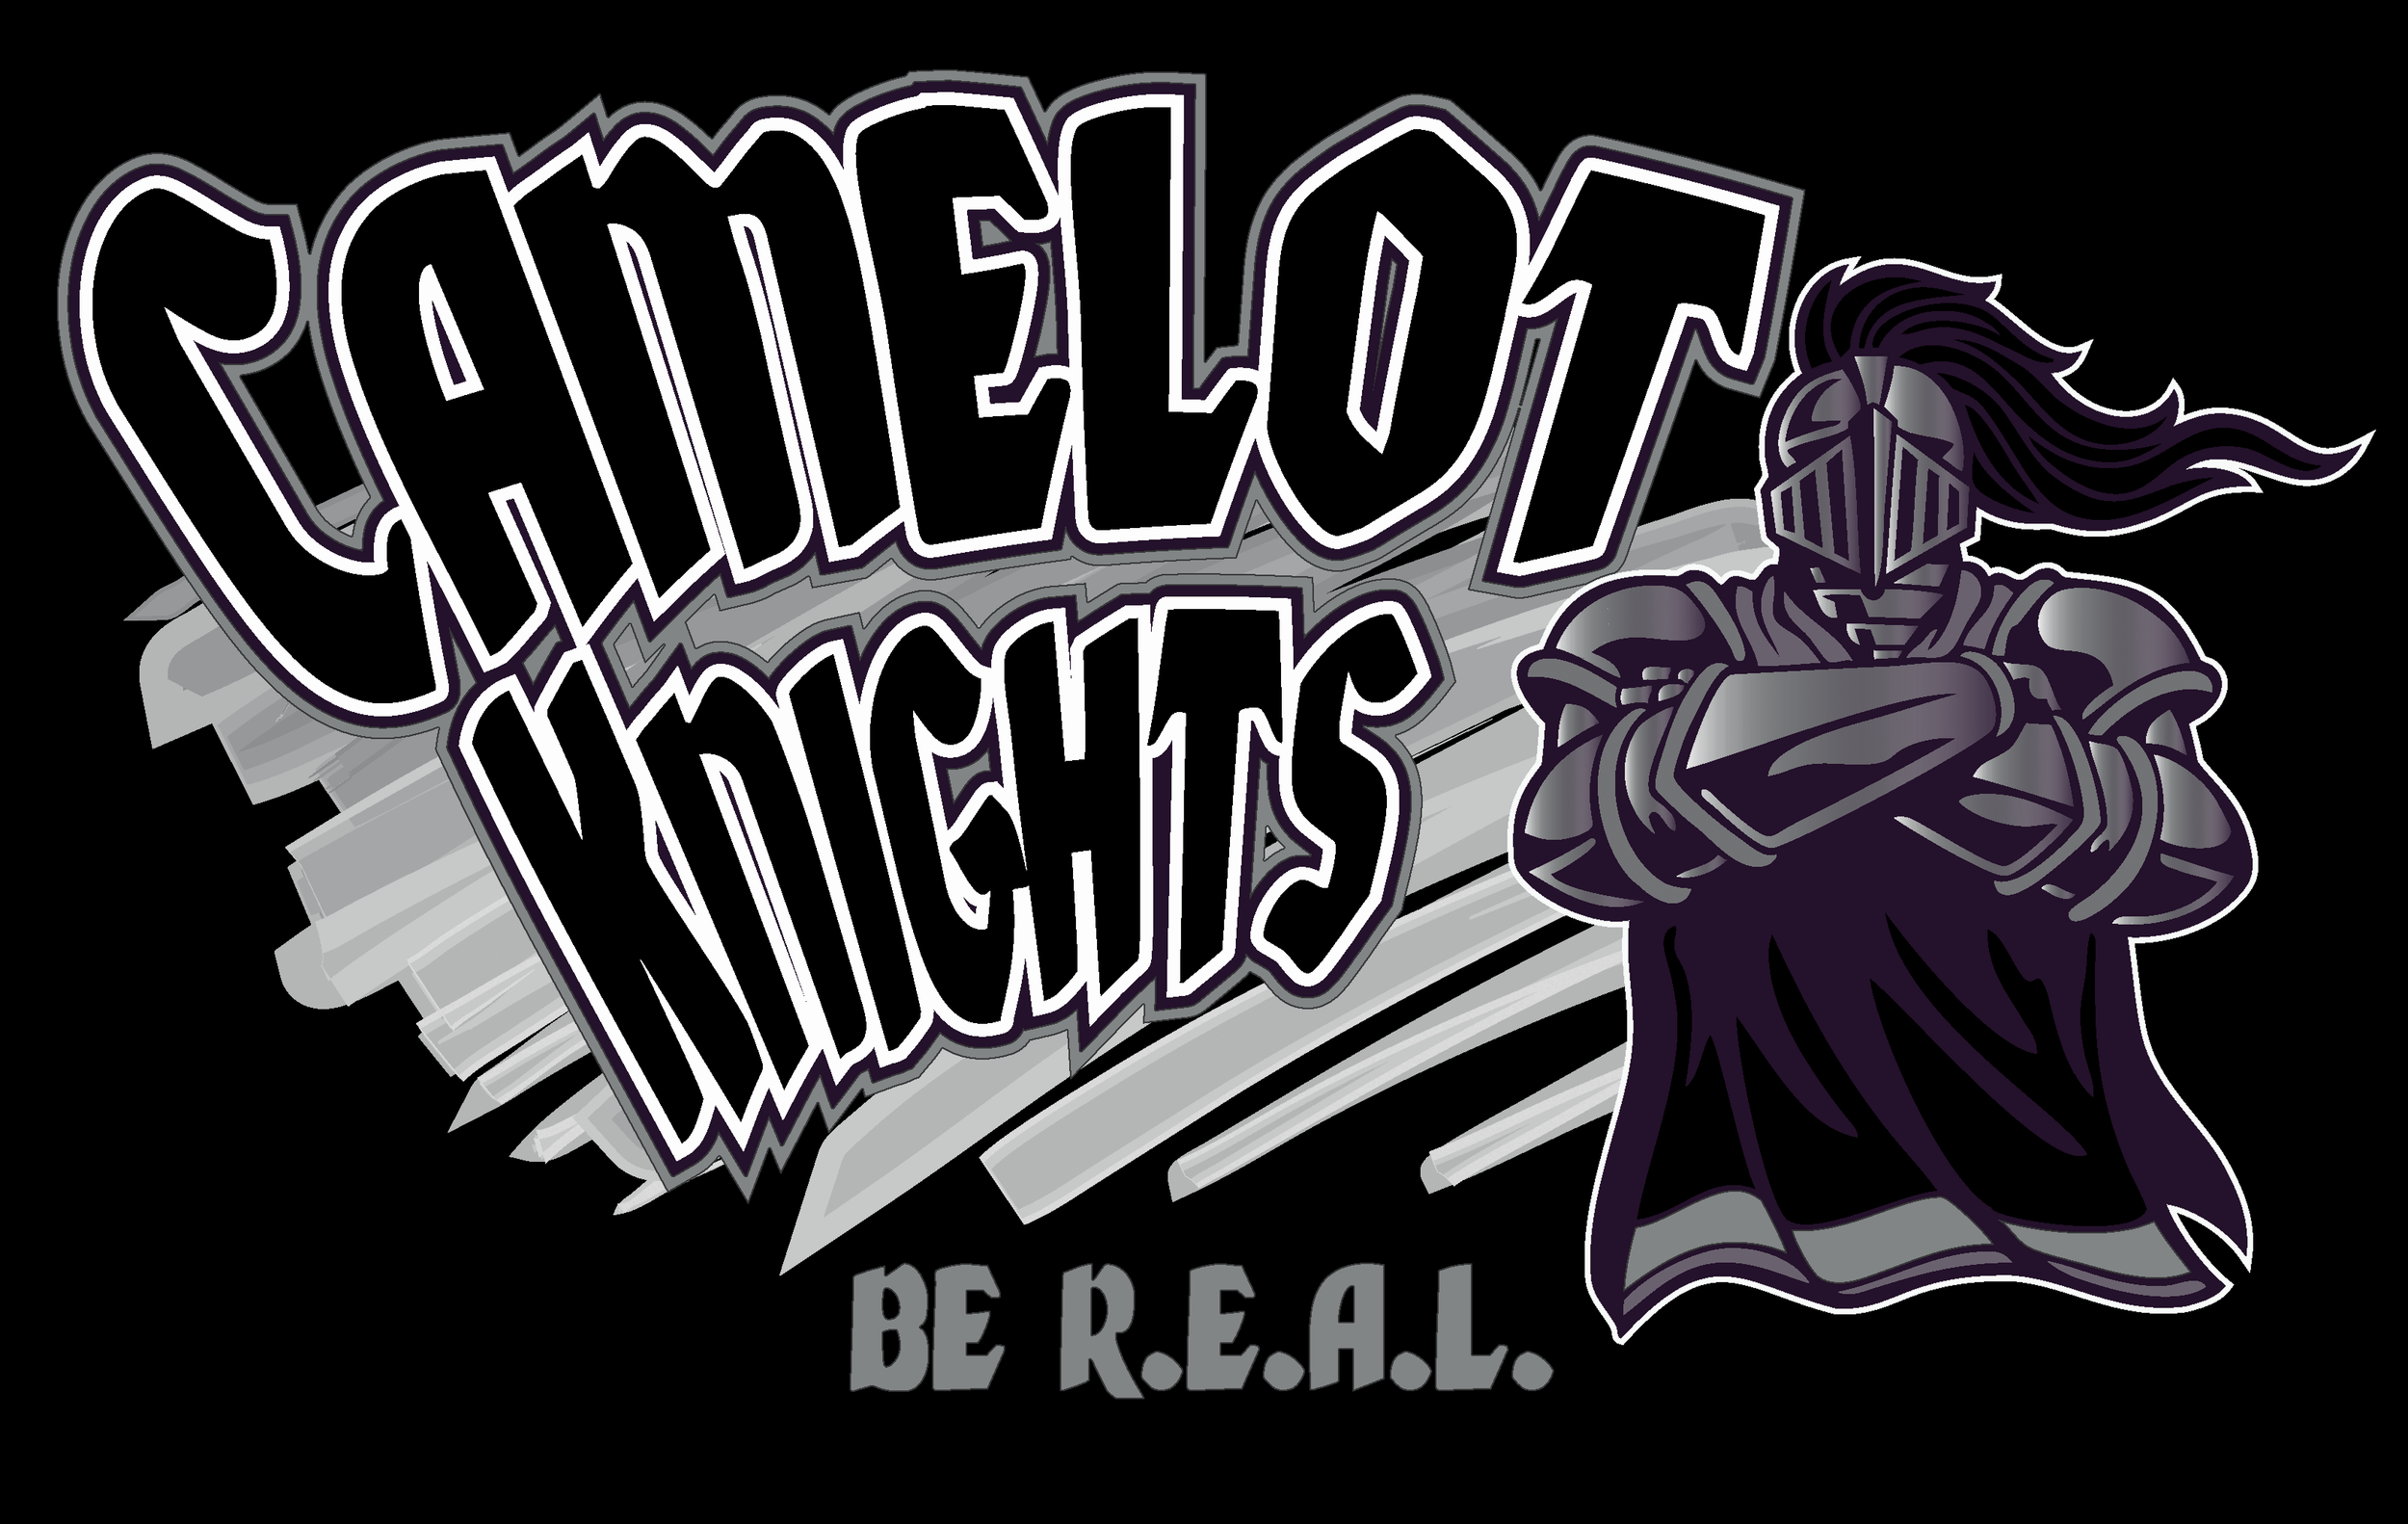 CamelotSchool_2016-10_CamelotKnightsREAL_CHEST-SEPS_OnBlack.png